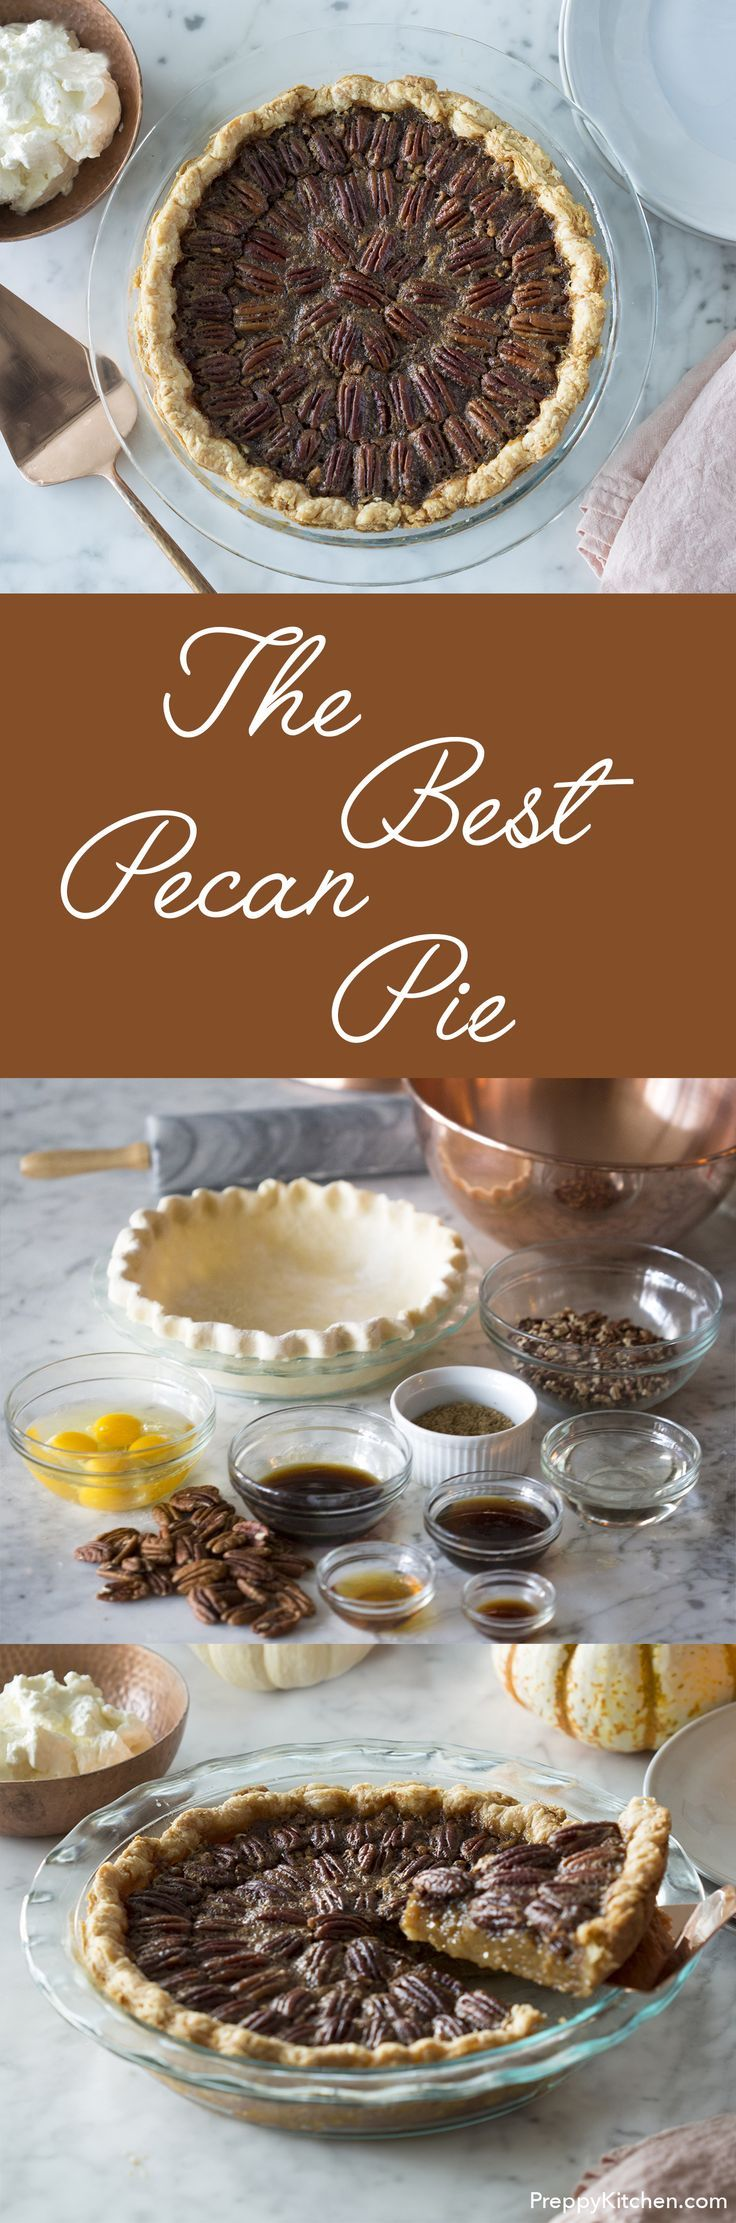 A flakey butter crust, pecans, maple syrup, honey, brown sugar and bourbon combine to make what I consider the perfect pecan pie. via /preppykitchen/